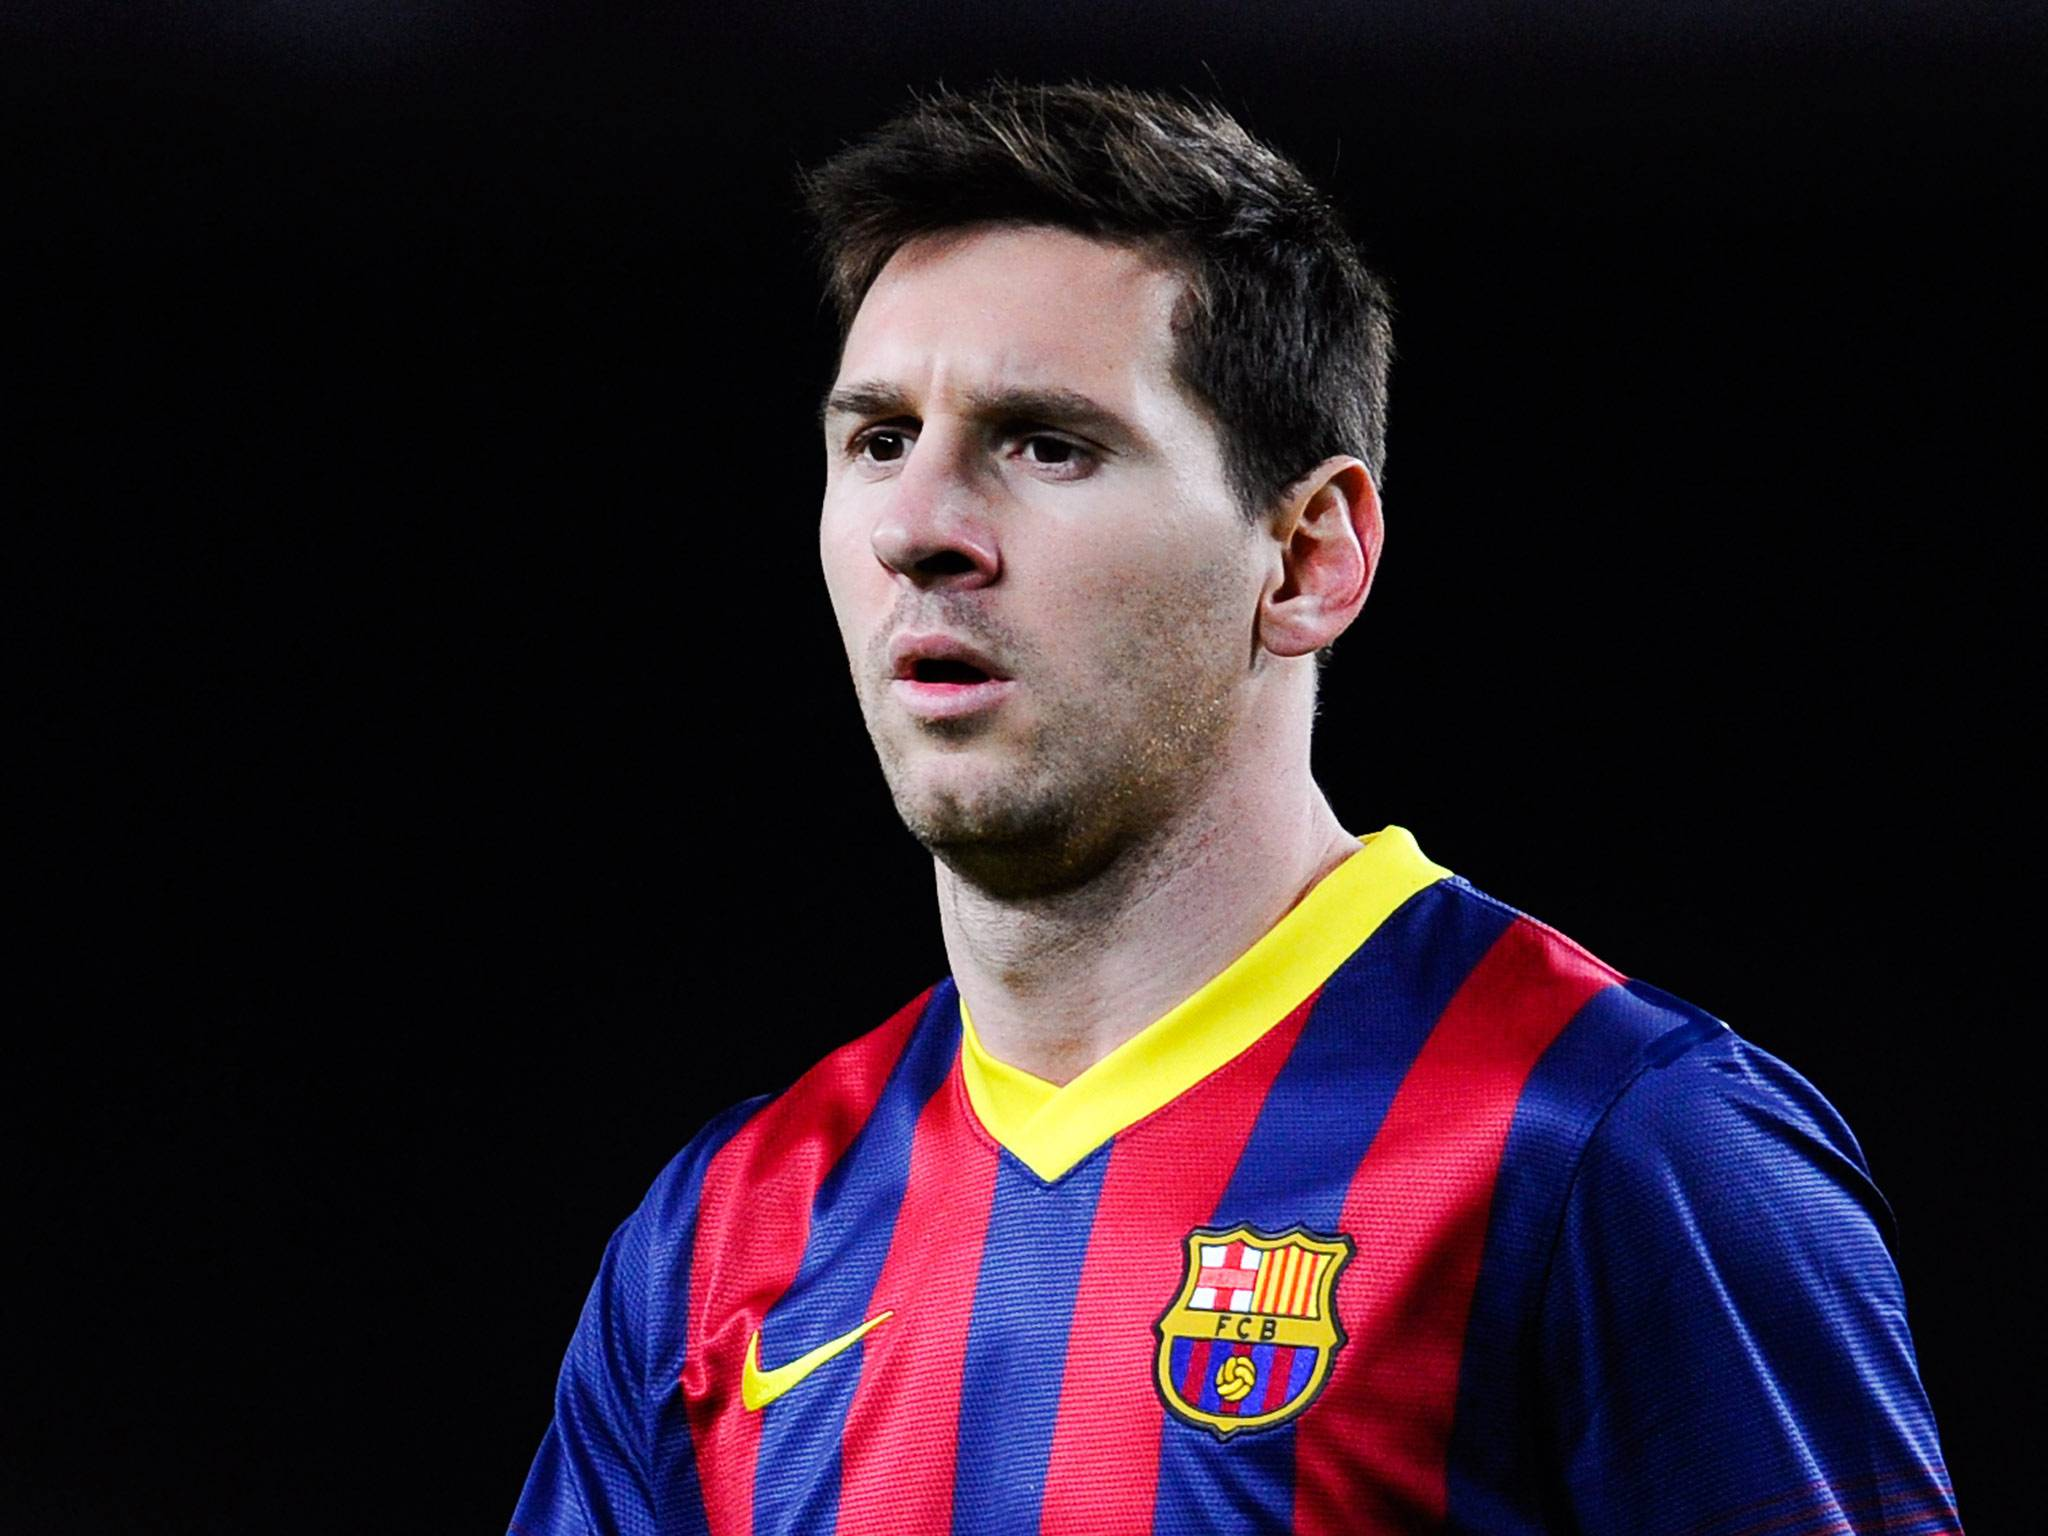 Image for Lionel Messi 2014 Hd Background Wallpaper 24 HD Wallpapers